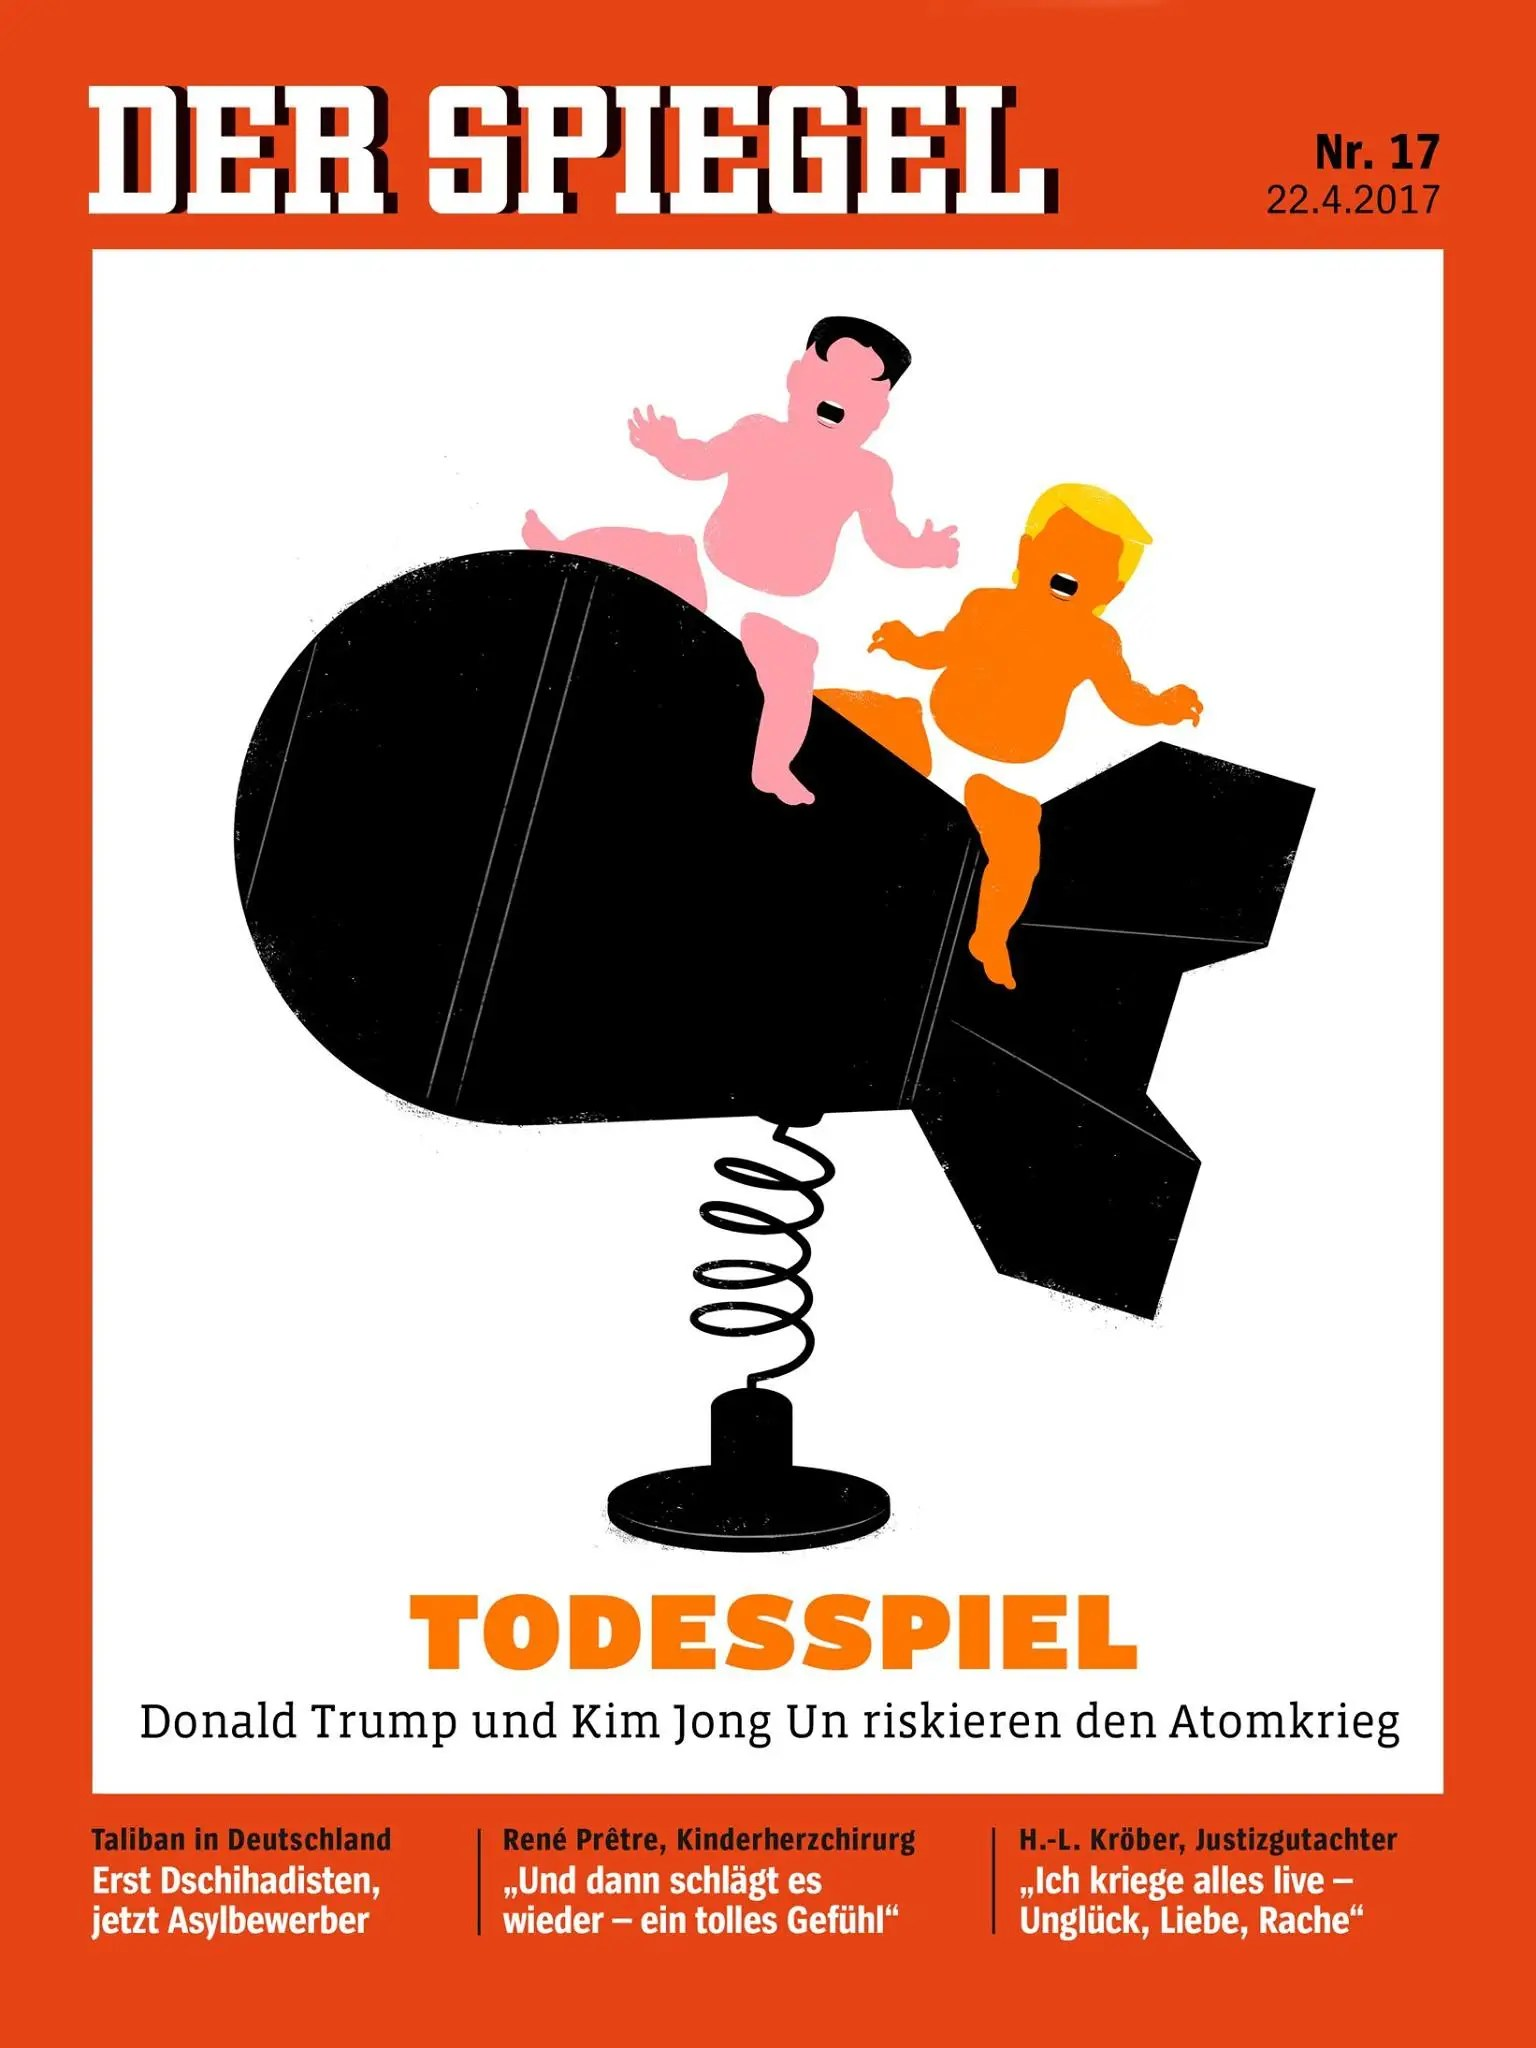 Spiegel Trump Test Der Spiegel Cover Kim Jong Un And Trump On Warhead